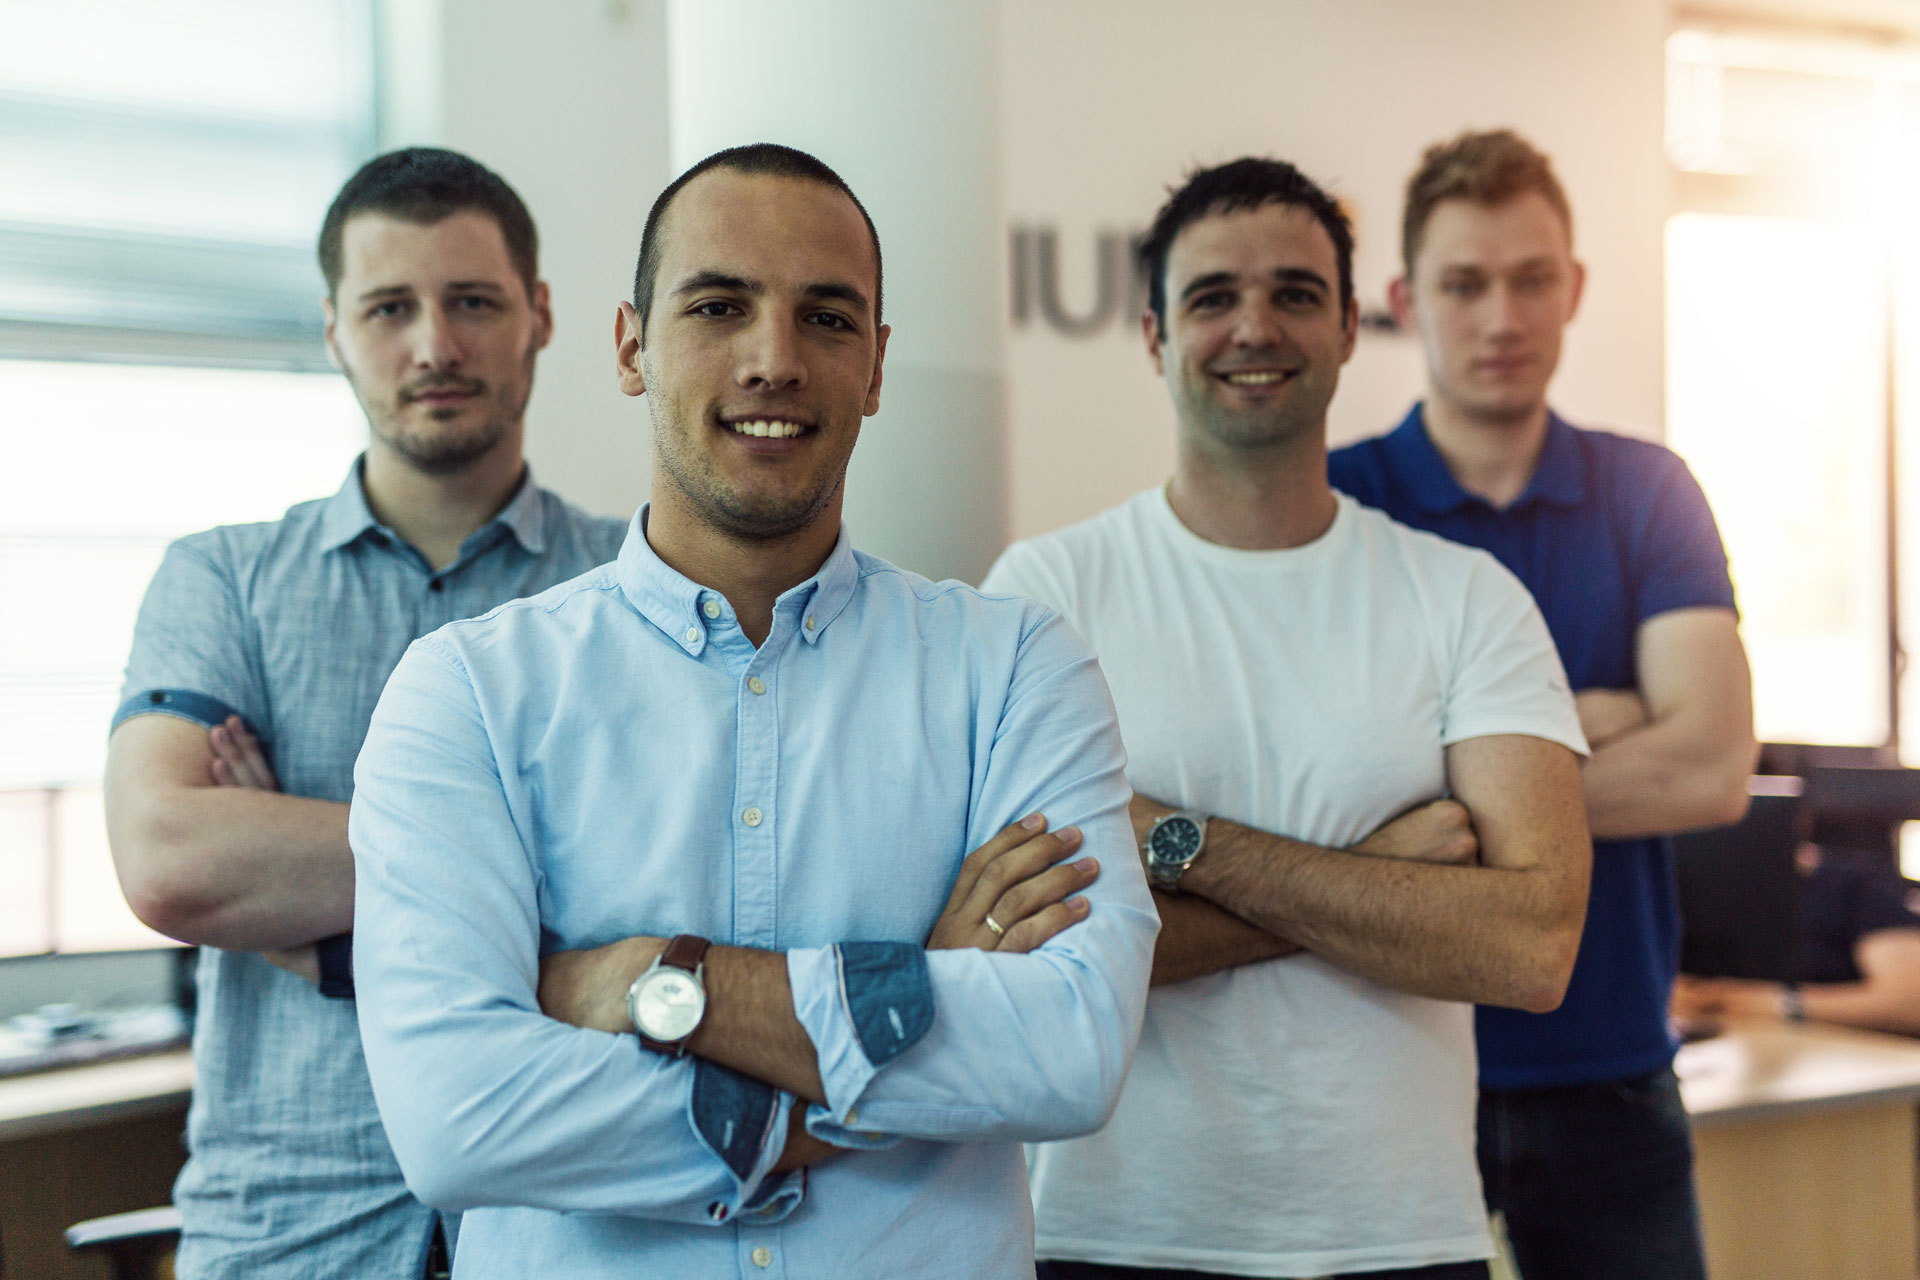 Group of young perspective It experts posing